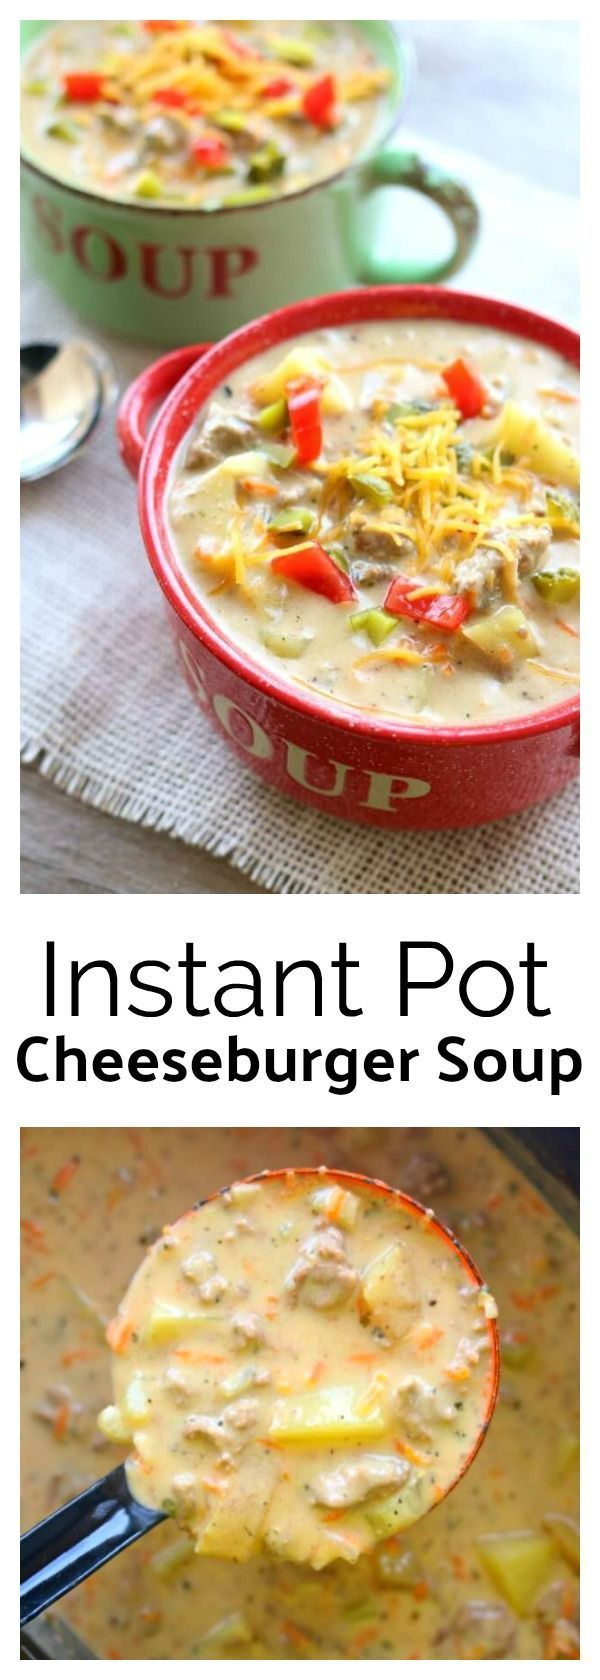 Instant Pot Cheeseburger Soup--creamy and cheesy soup that is made so fast in your electric pressure cooker. Serve it with diced up dill pickle and tomatoes to get that authentic cheeseburger taste. Add crumbled bacon for bacon cheeseburger soup! Miss the bun? Make homemade croutons out of a toasted sesame seed bun to get the total effect. Bottom line...you need to make this today!